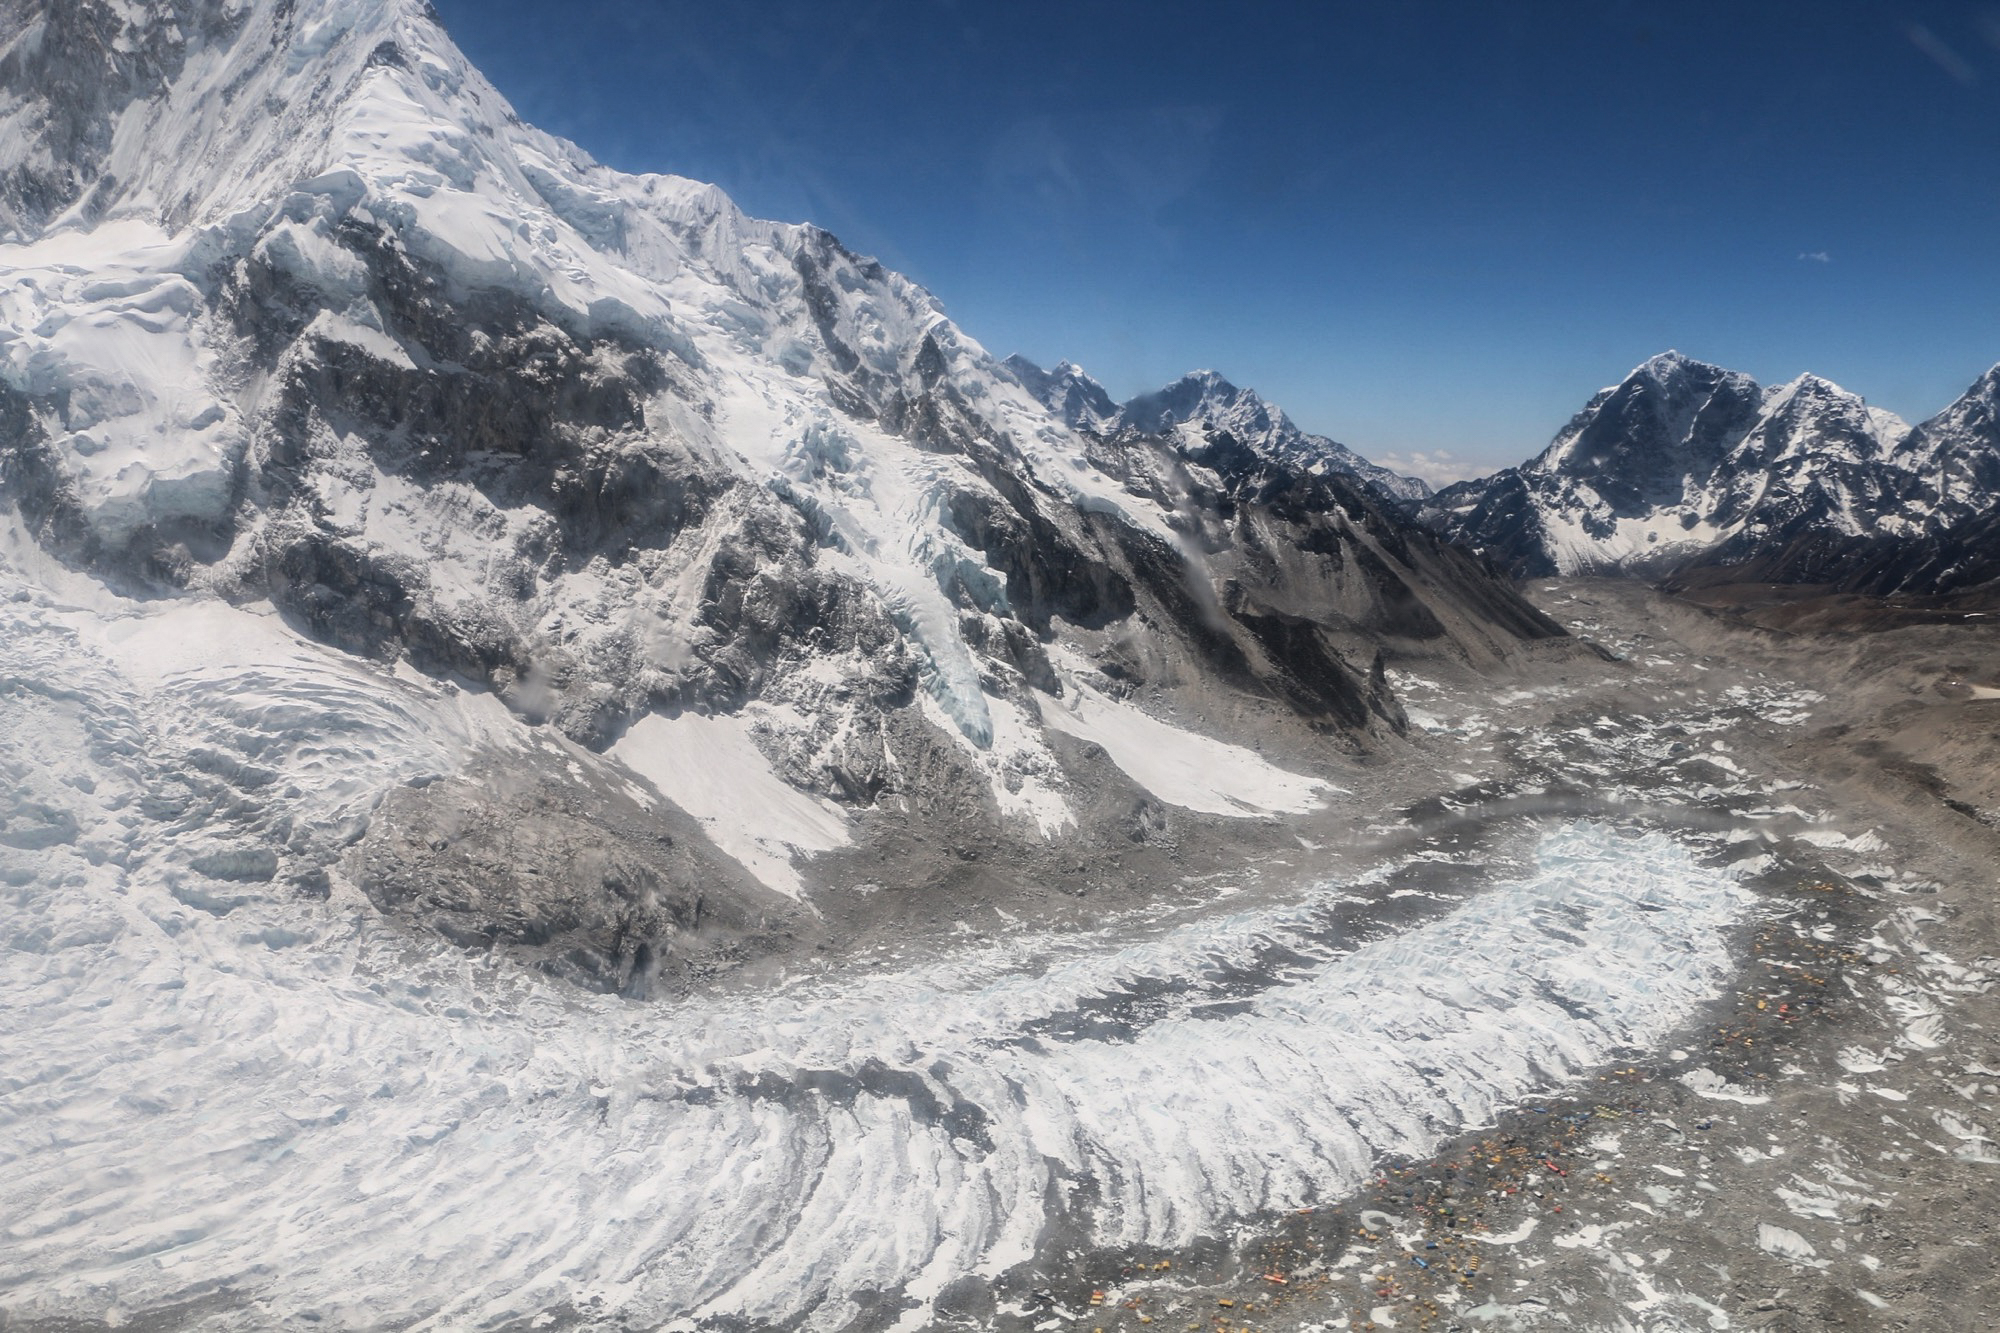 Looking at Everest Base Camp from Helicopter